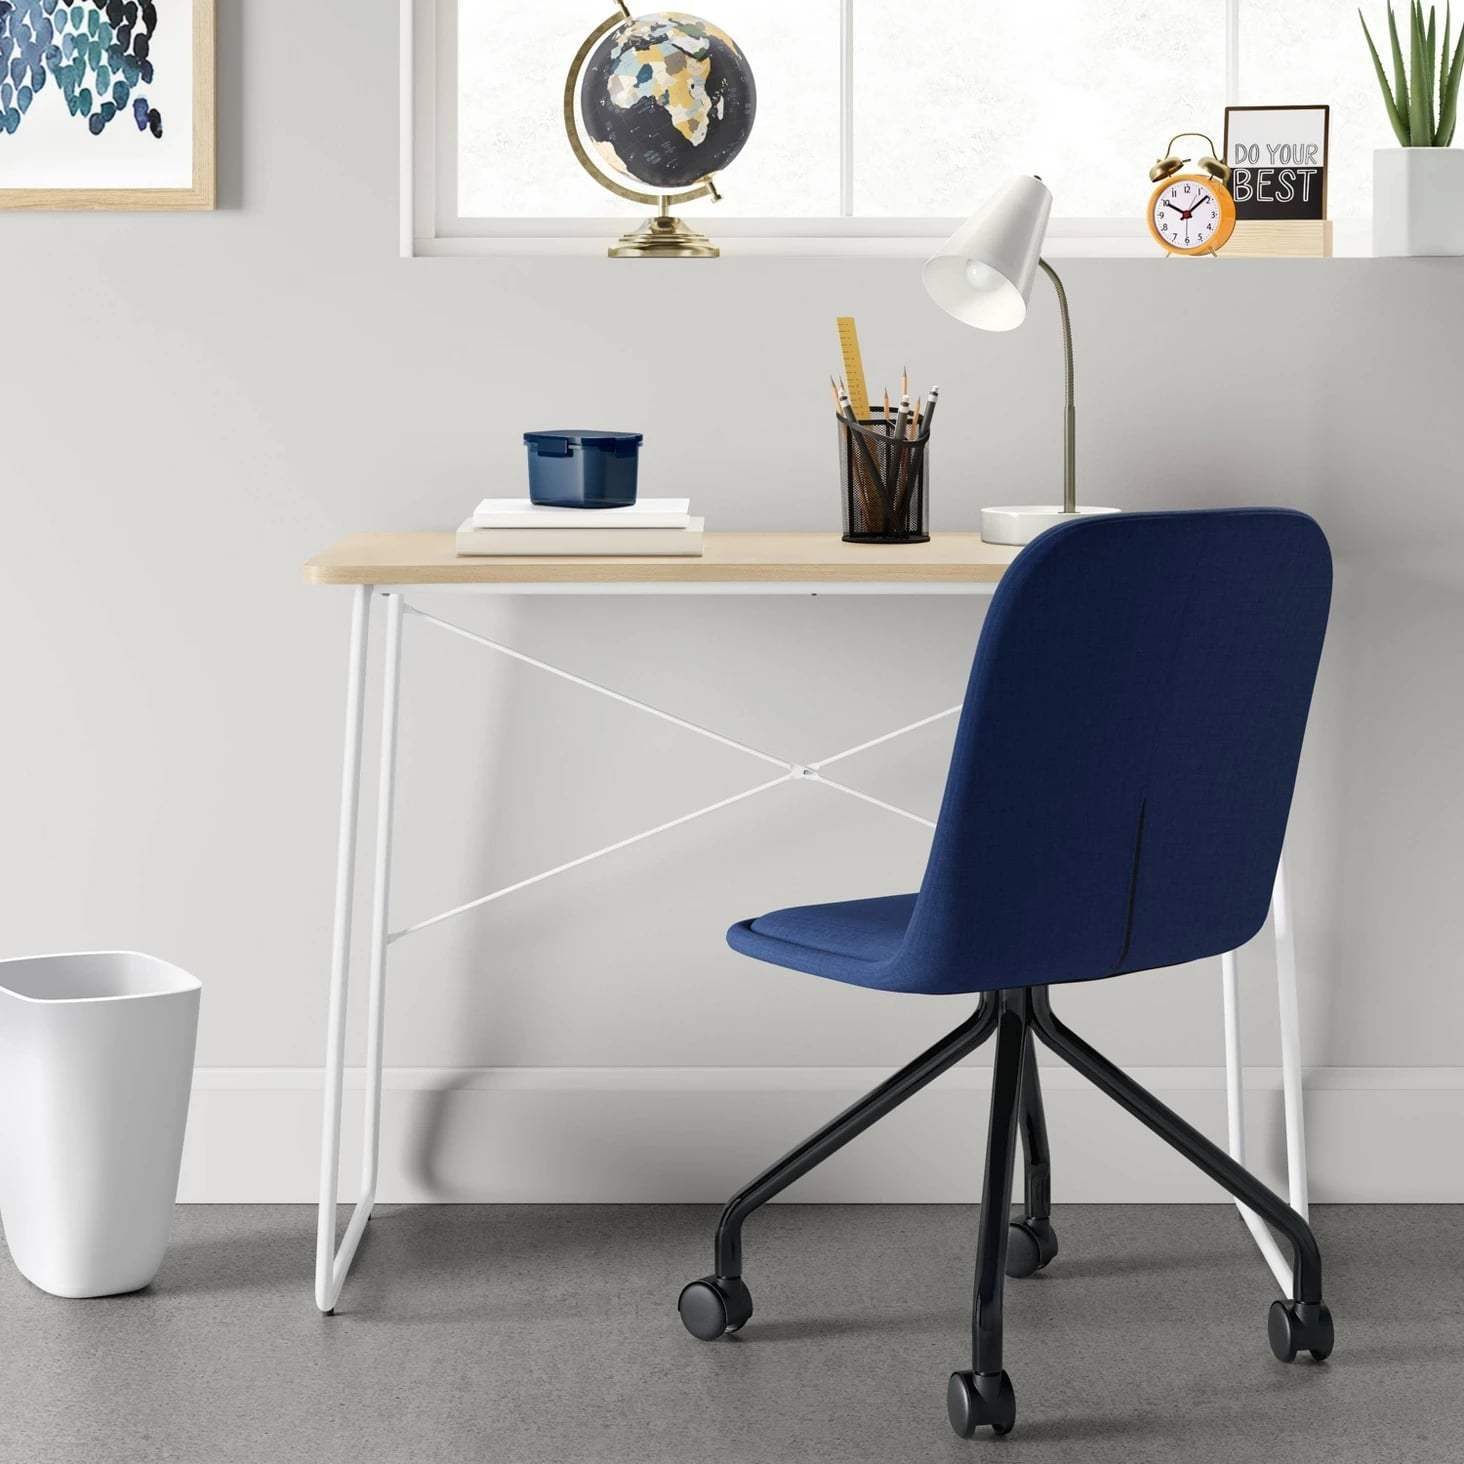 Upholstered Rolling Desk Chair Prepare Your College Checklist 50 Affordable Dorm Furniture Pieces To Buy From Target Asap Popsugar Home Photo 47